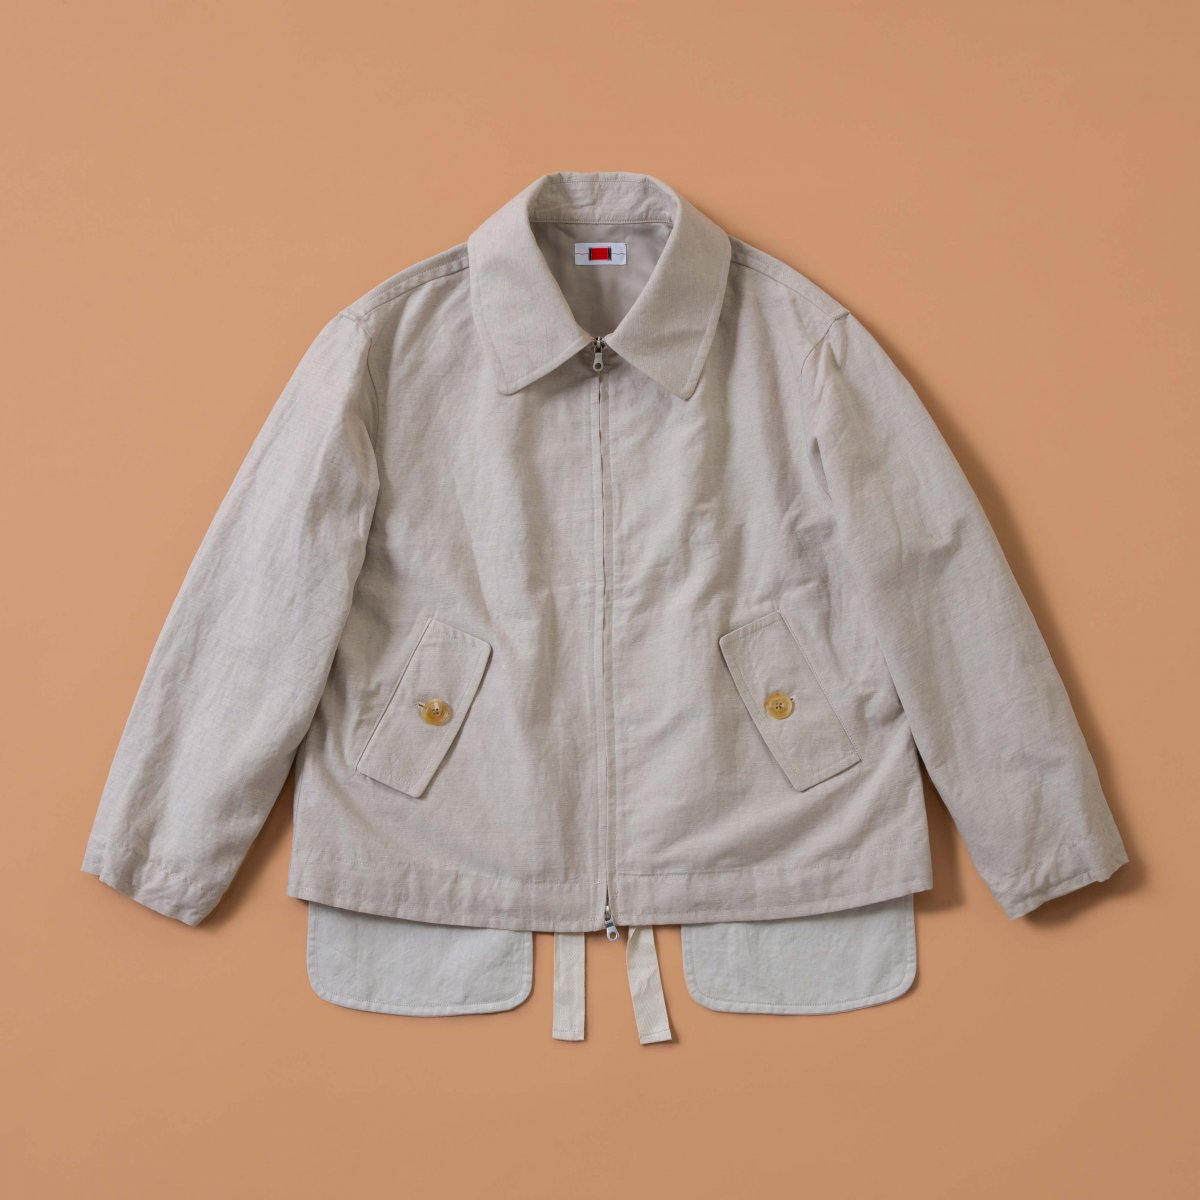 <img class='new_mark_img1' src='https://img.shop-pro.jp/img/new/icons5.gif' style='border:none;display:inline;margin:0px;padding:0px;width:auto;' />EMPTY BLOUSON / SAND BEIGE